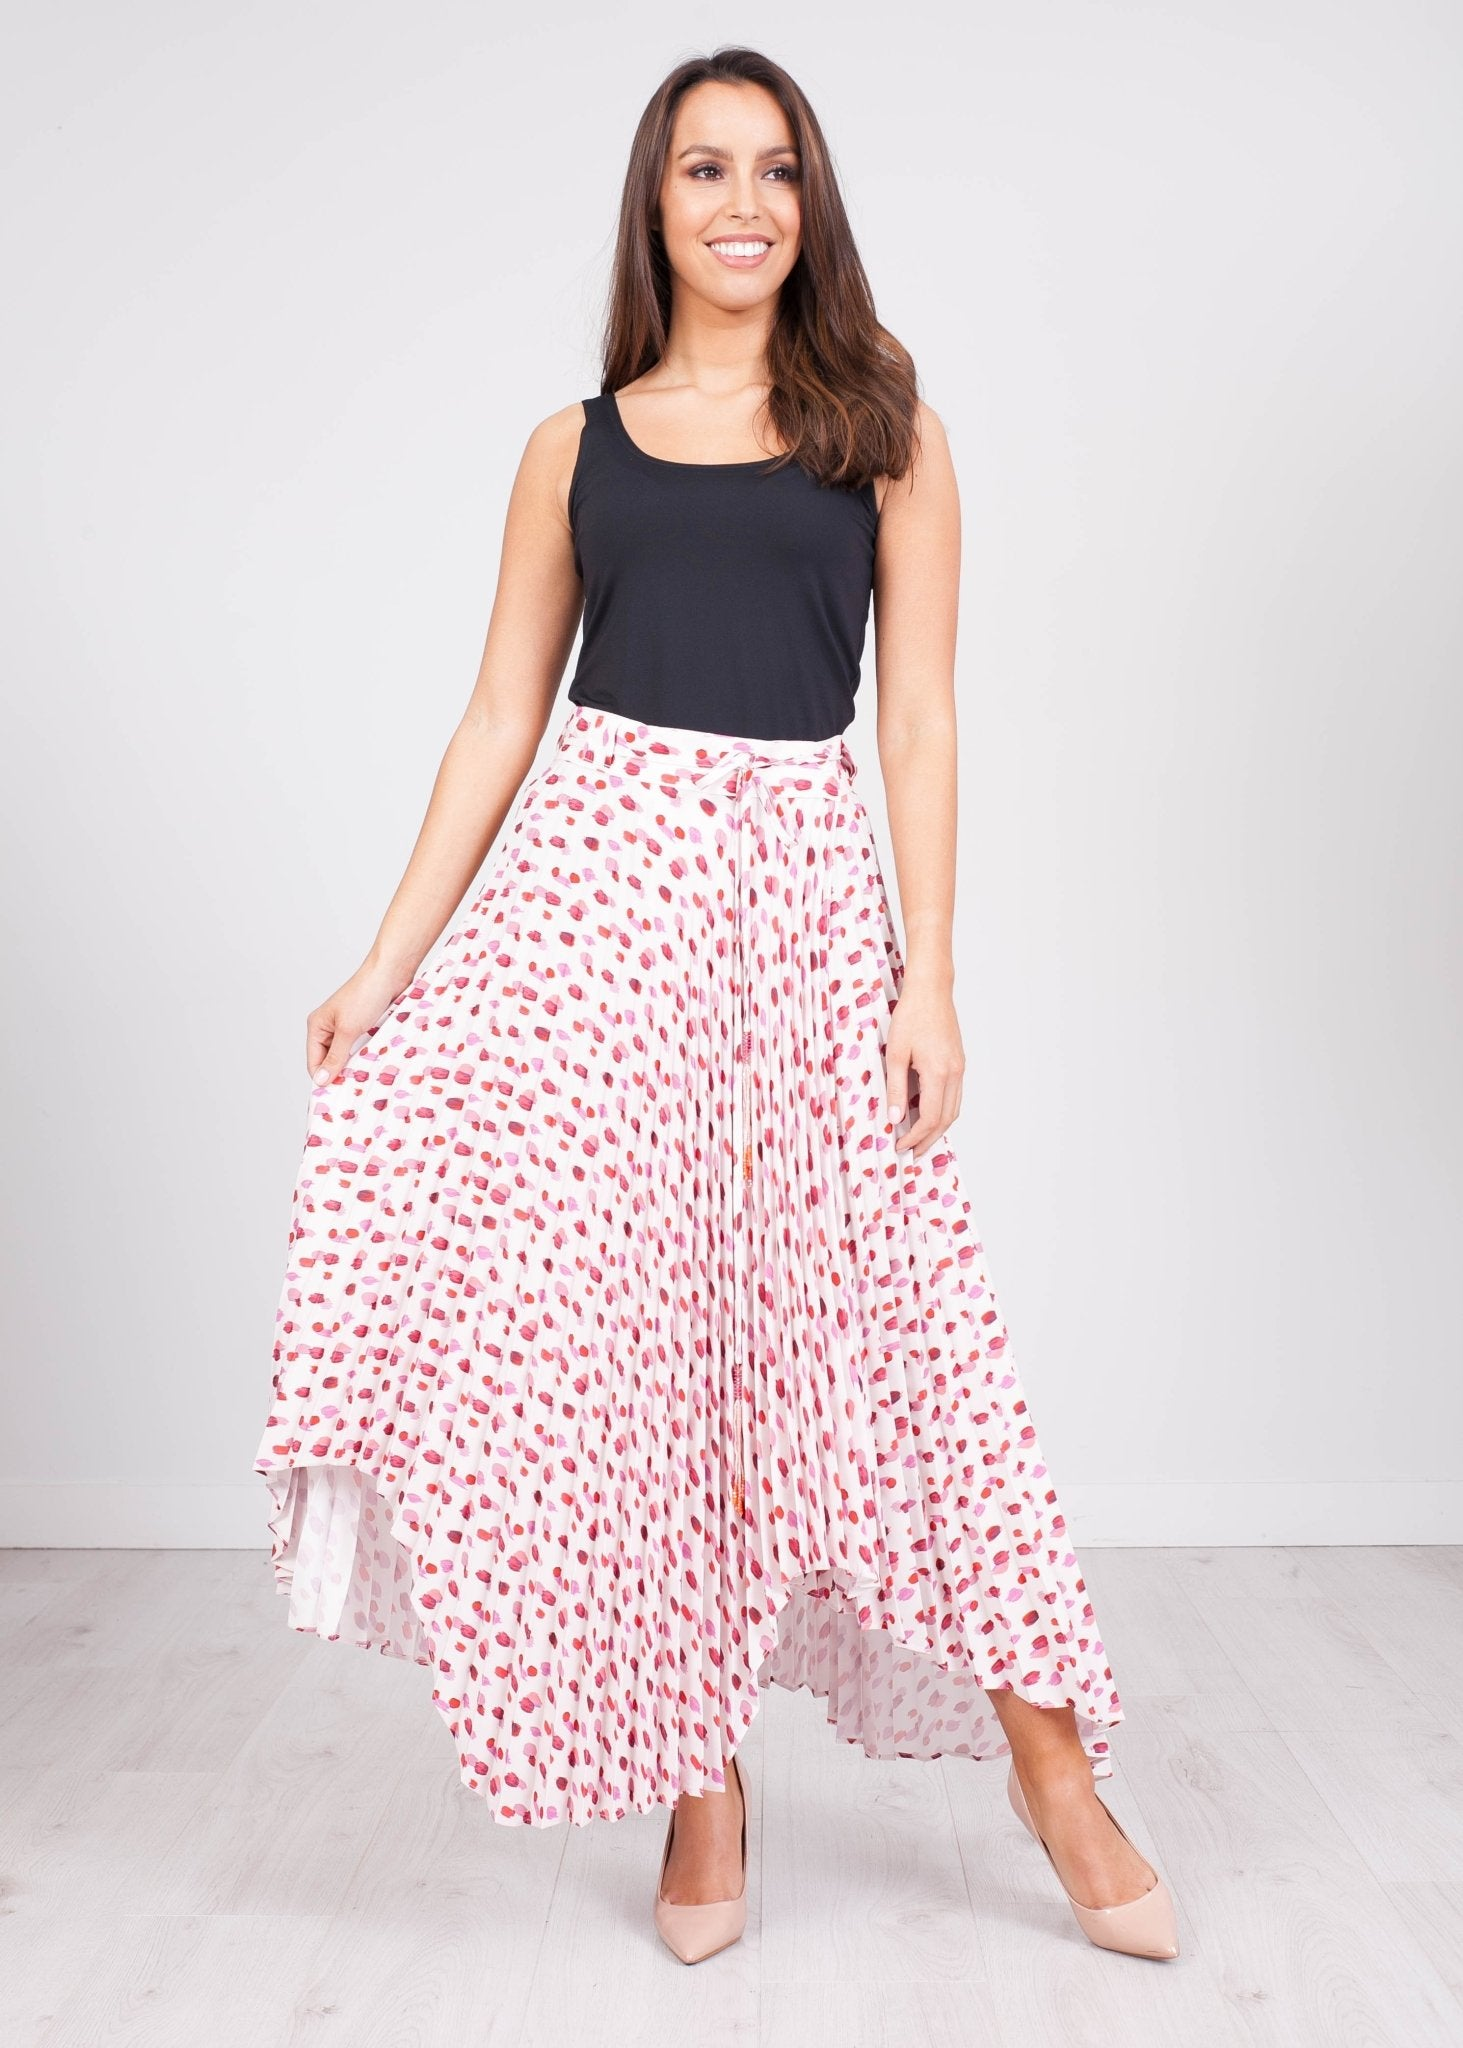 Eva Blush Pattern Skirt - The Walk in Wardrobe